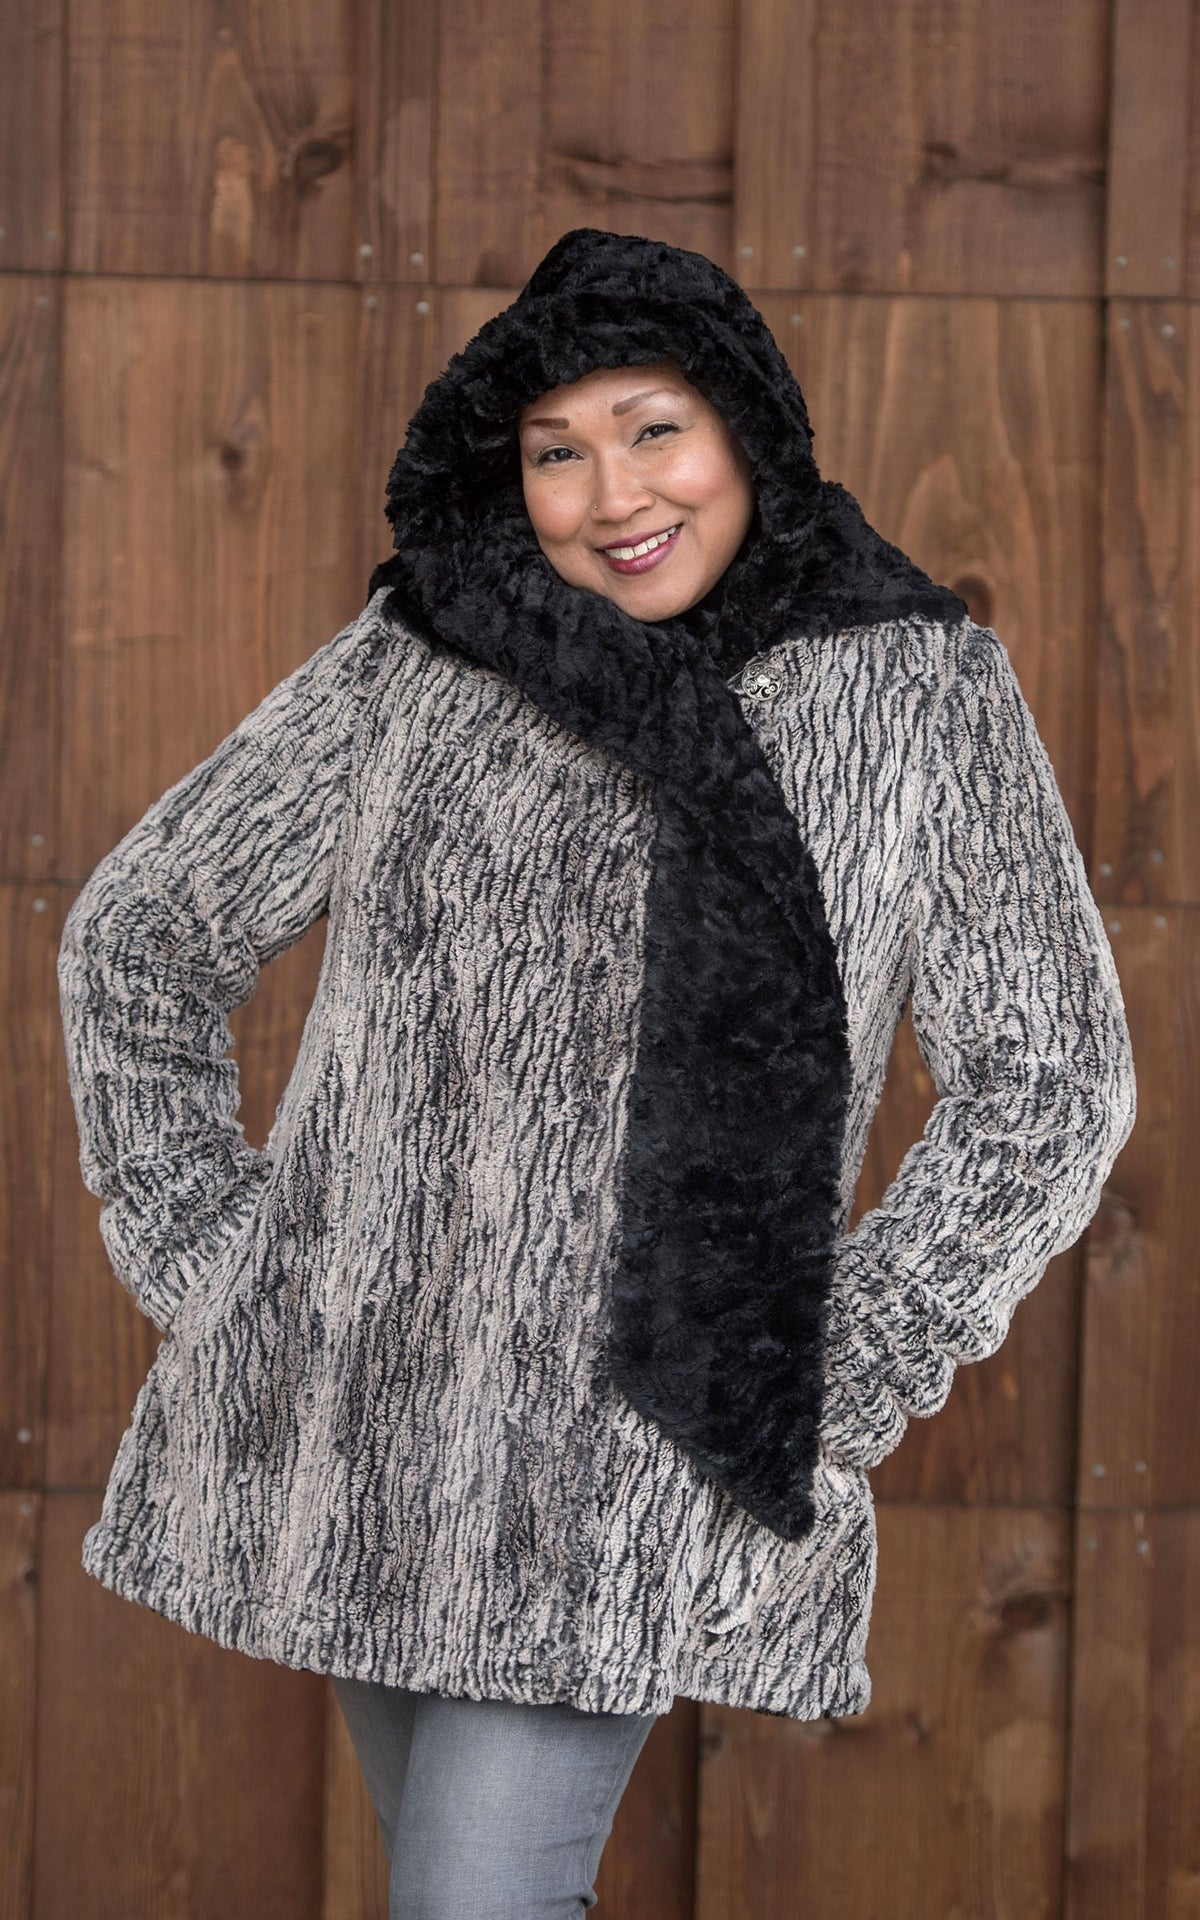 Hepburn Swing Coat - Luxury Faux Fur in Black Walnut with Cuddly Fur in Black (One Medium Left!)